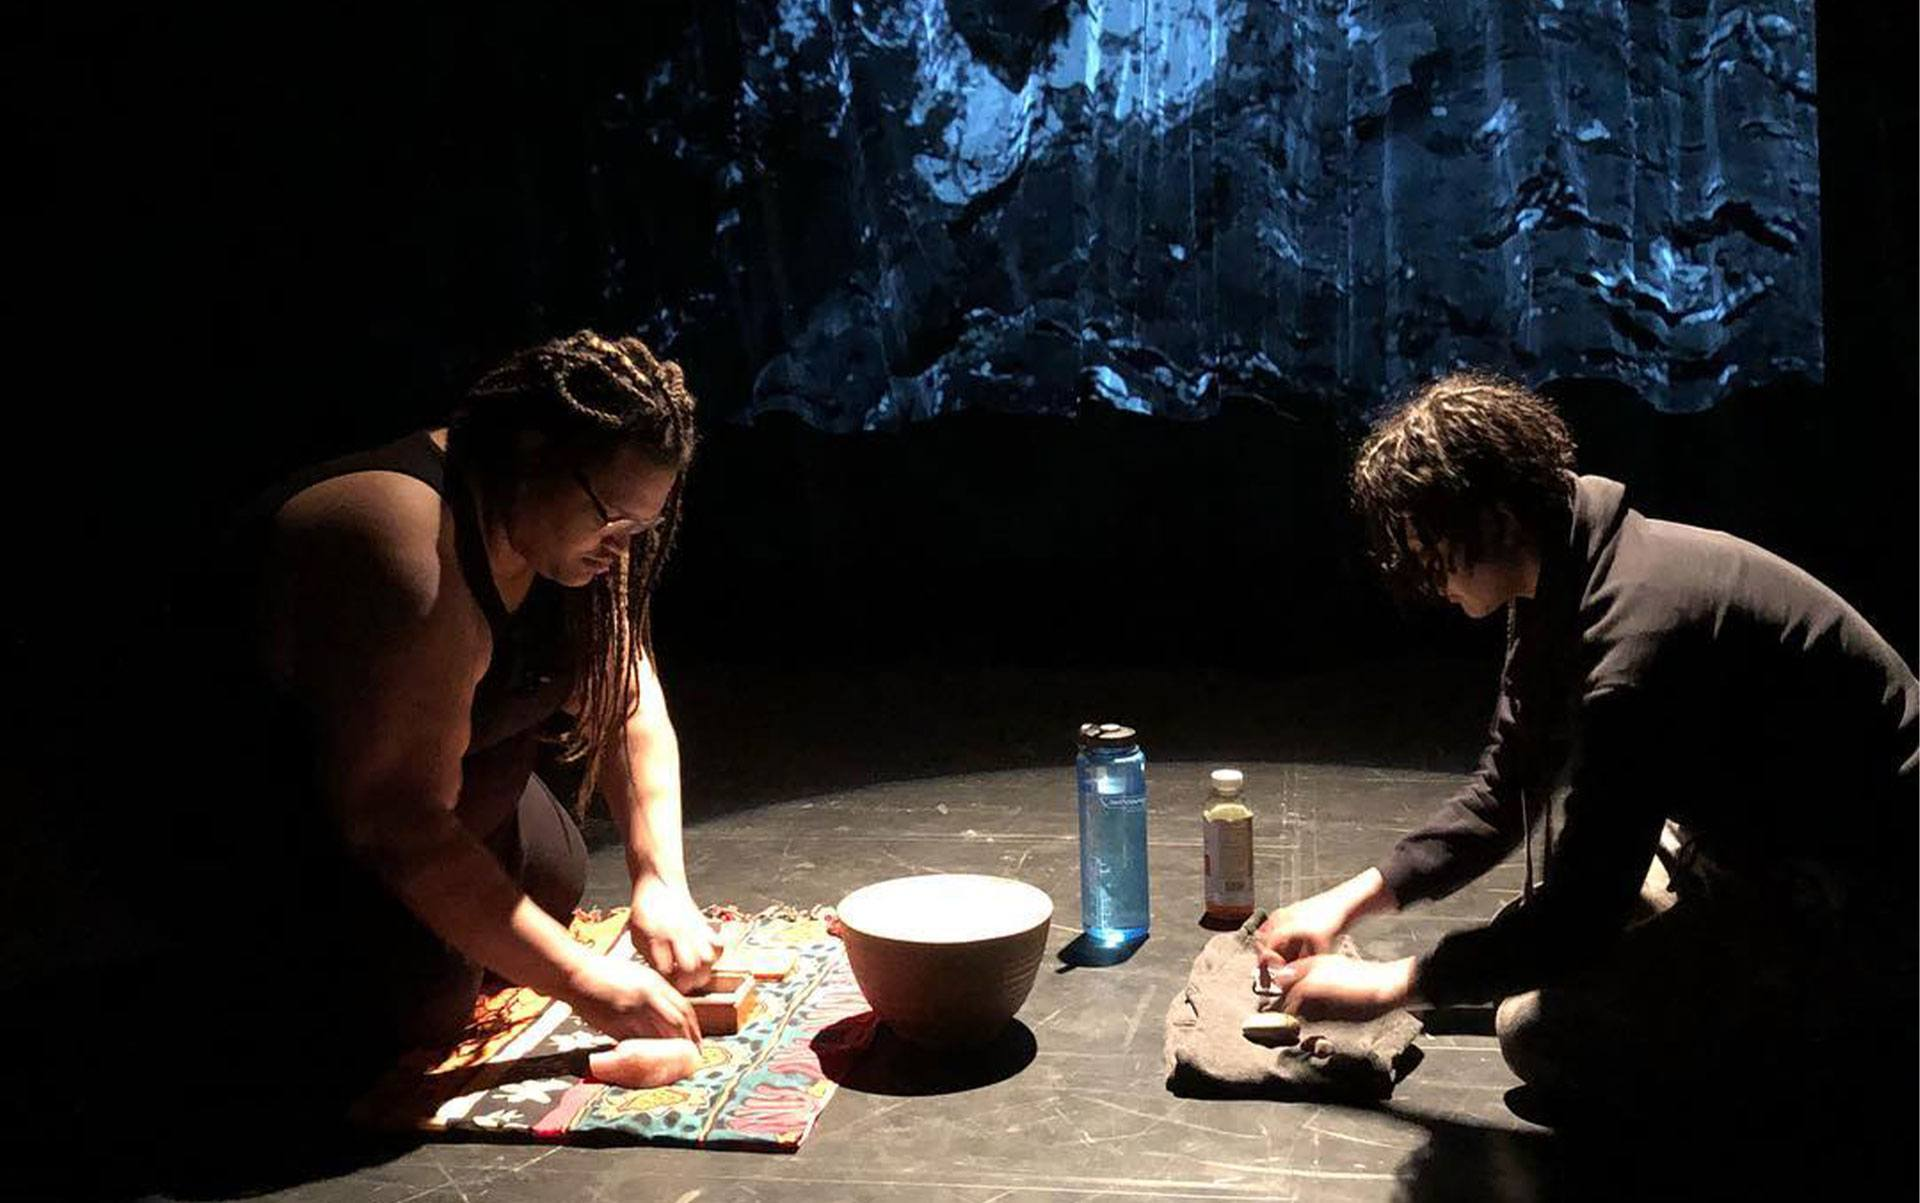 2 people sit working on different objects with their hands in a performance on a stage